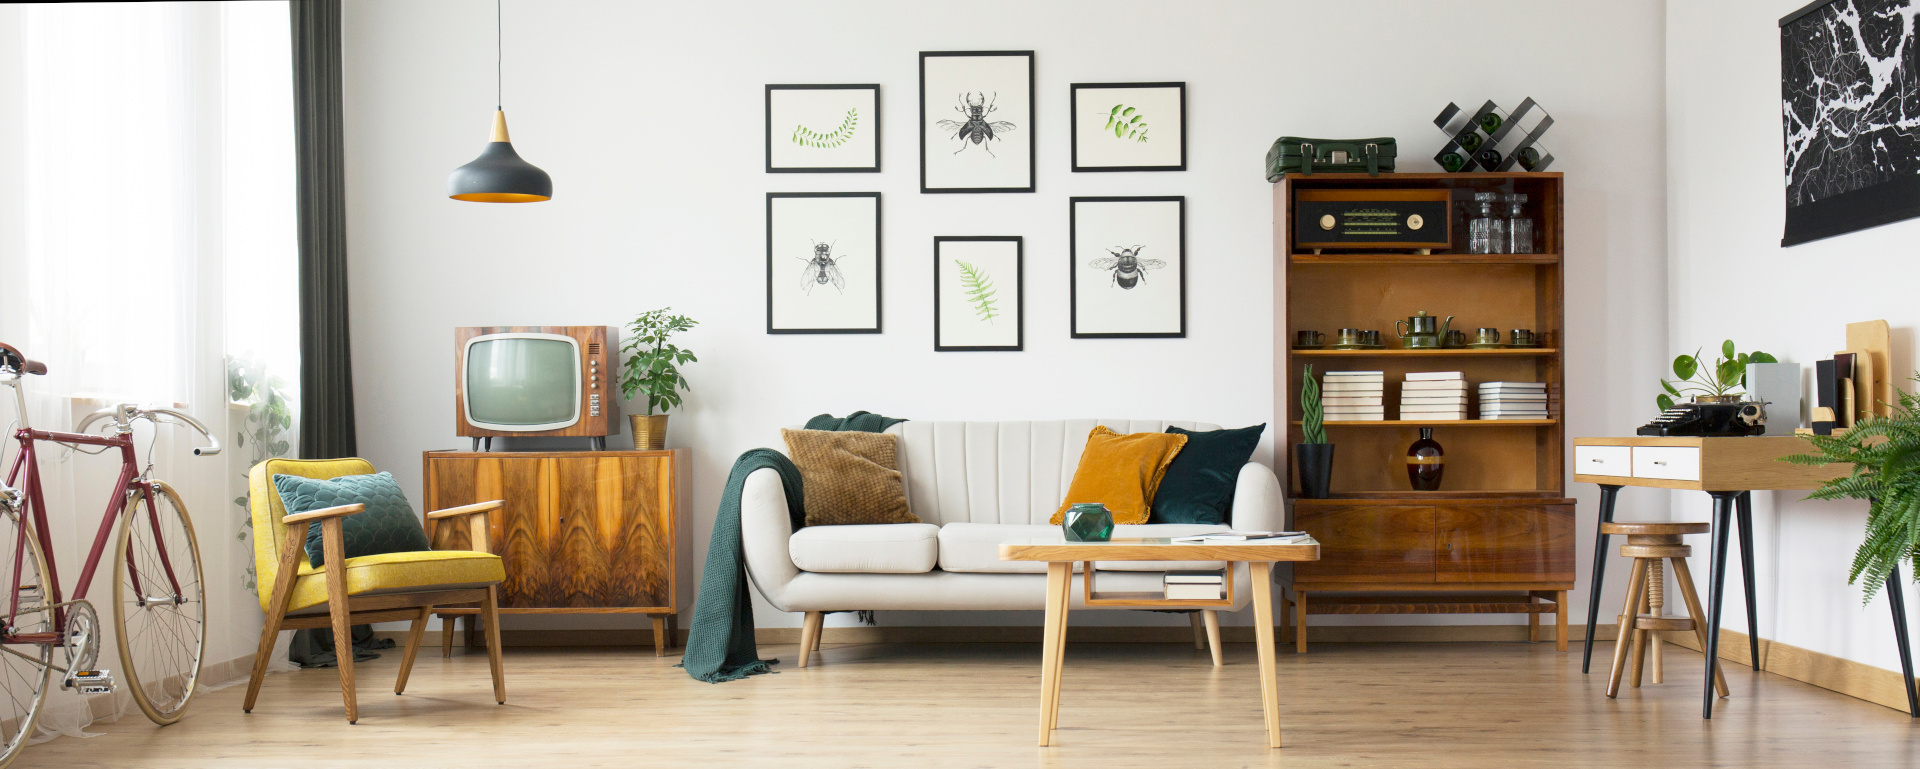 Living room with furniture and cycle